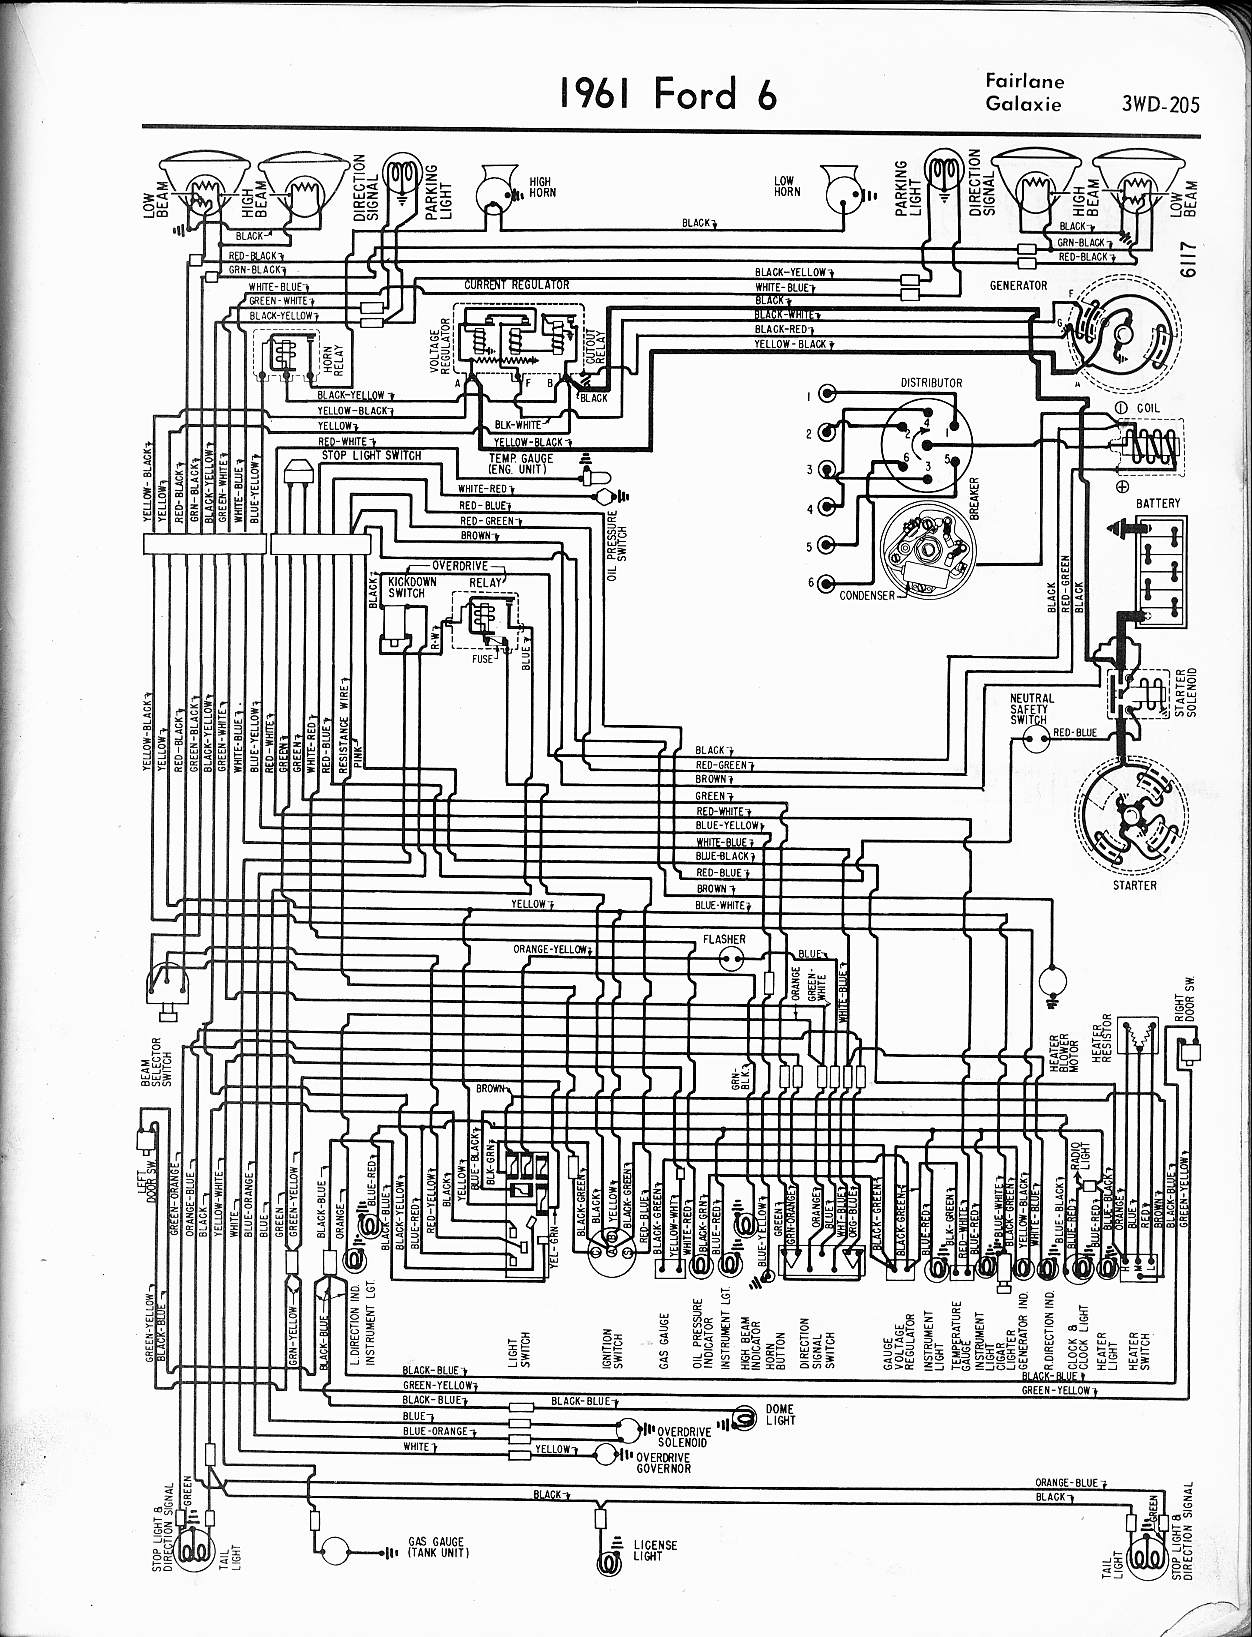 MWire5765 205 wiring diagram model a ford the wiring diagram readingrat net Ford E 350 Wiring Diagrams at crackthecode.co